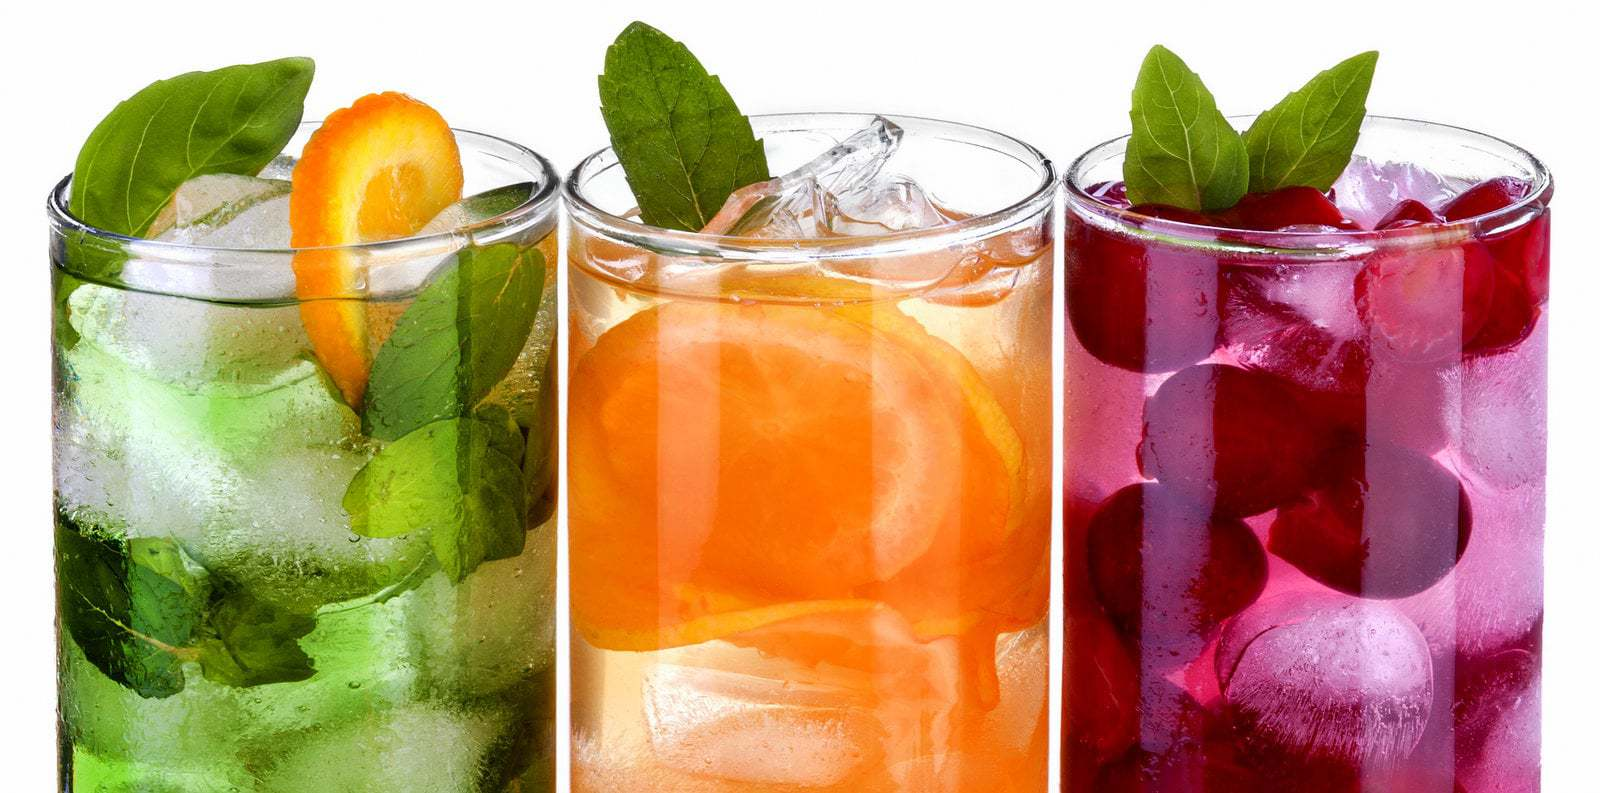 30 fun fruity non alcoholic drink recipes 1919 click for Fun alcoholic drink recipes